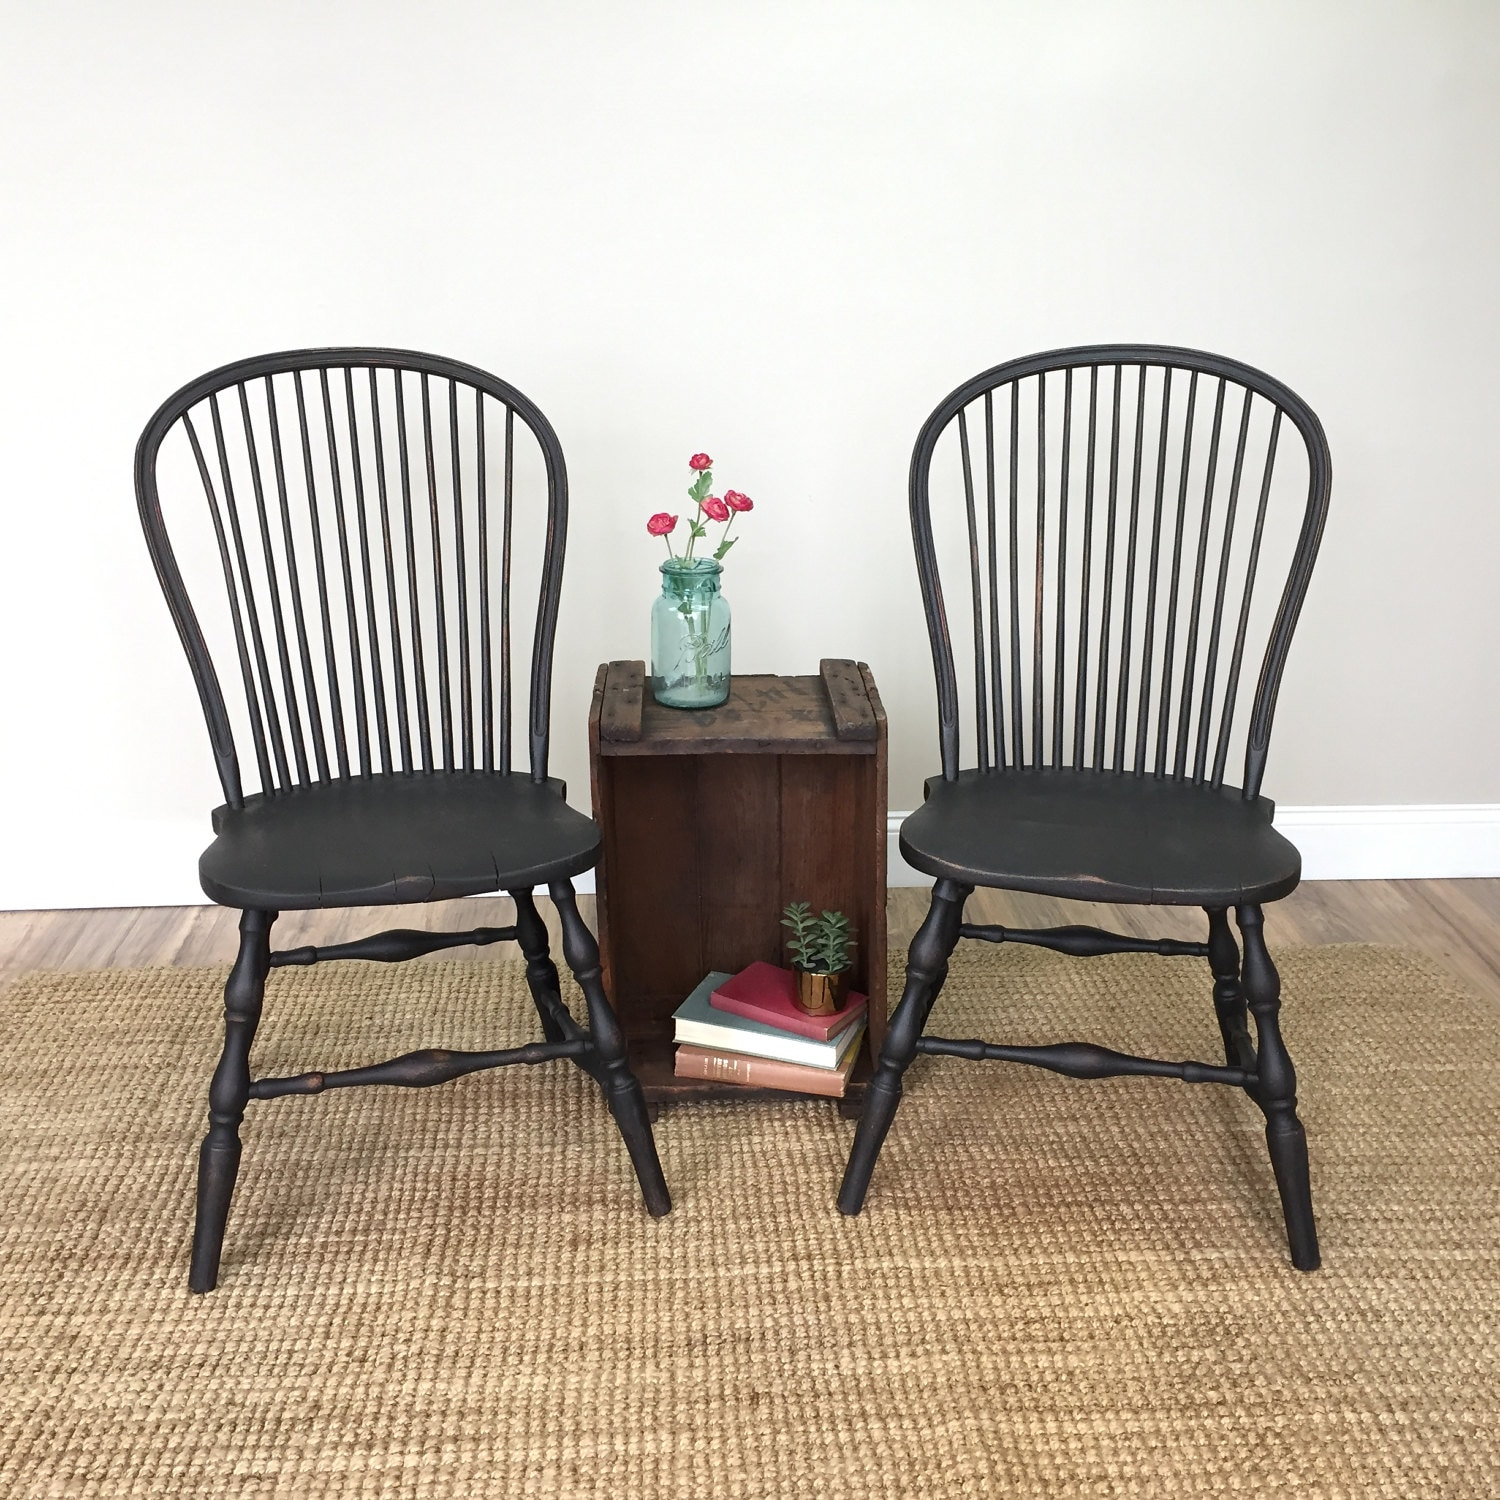 Black Windsor Chairs - Farmhouse Dining Chairs - Antique Wooden Chairs -  Spindle Chair - Country Cottage Furniture - Fixer Upper Style - Black Windsor Chairs - Farmhouse Dining Chairs - Antique Wooden